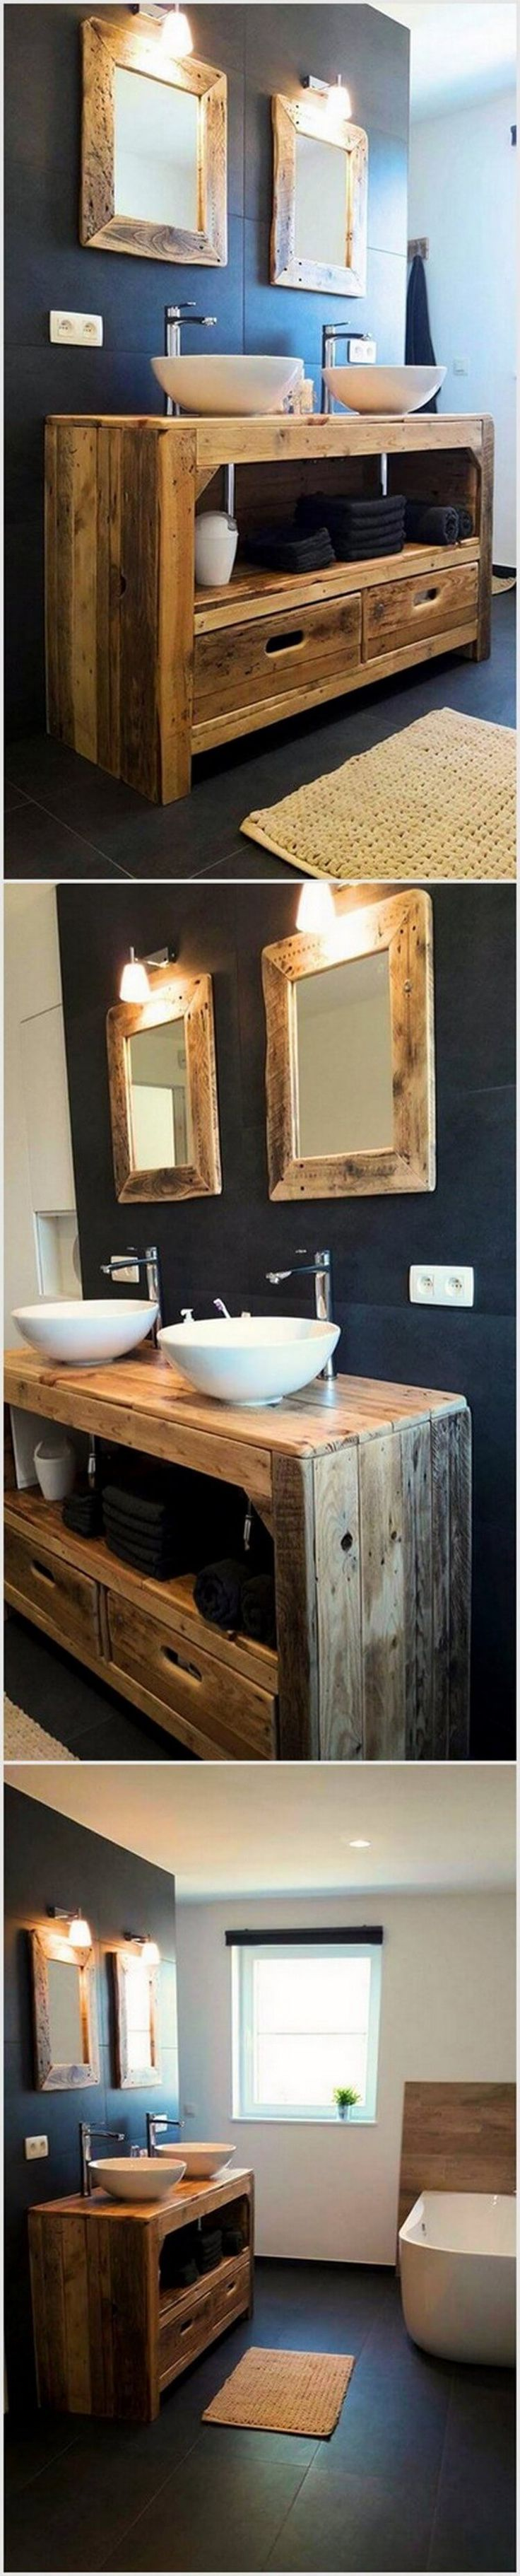 You can make bathroom furniture by using old shipping wood pallets You can adorn